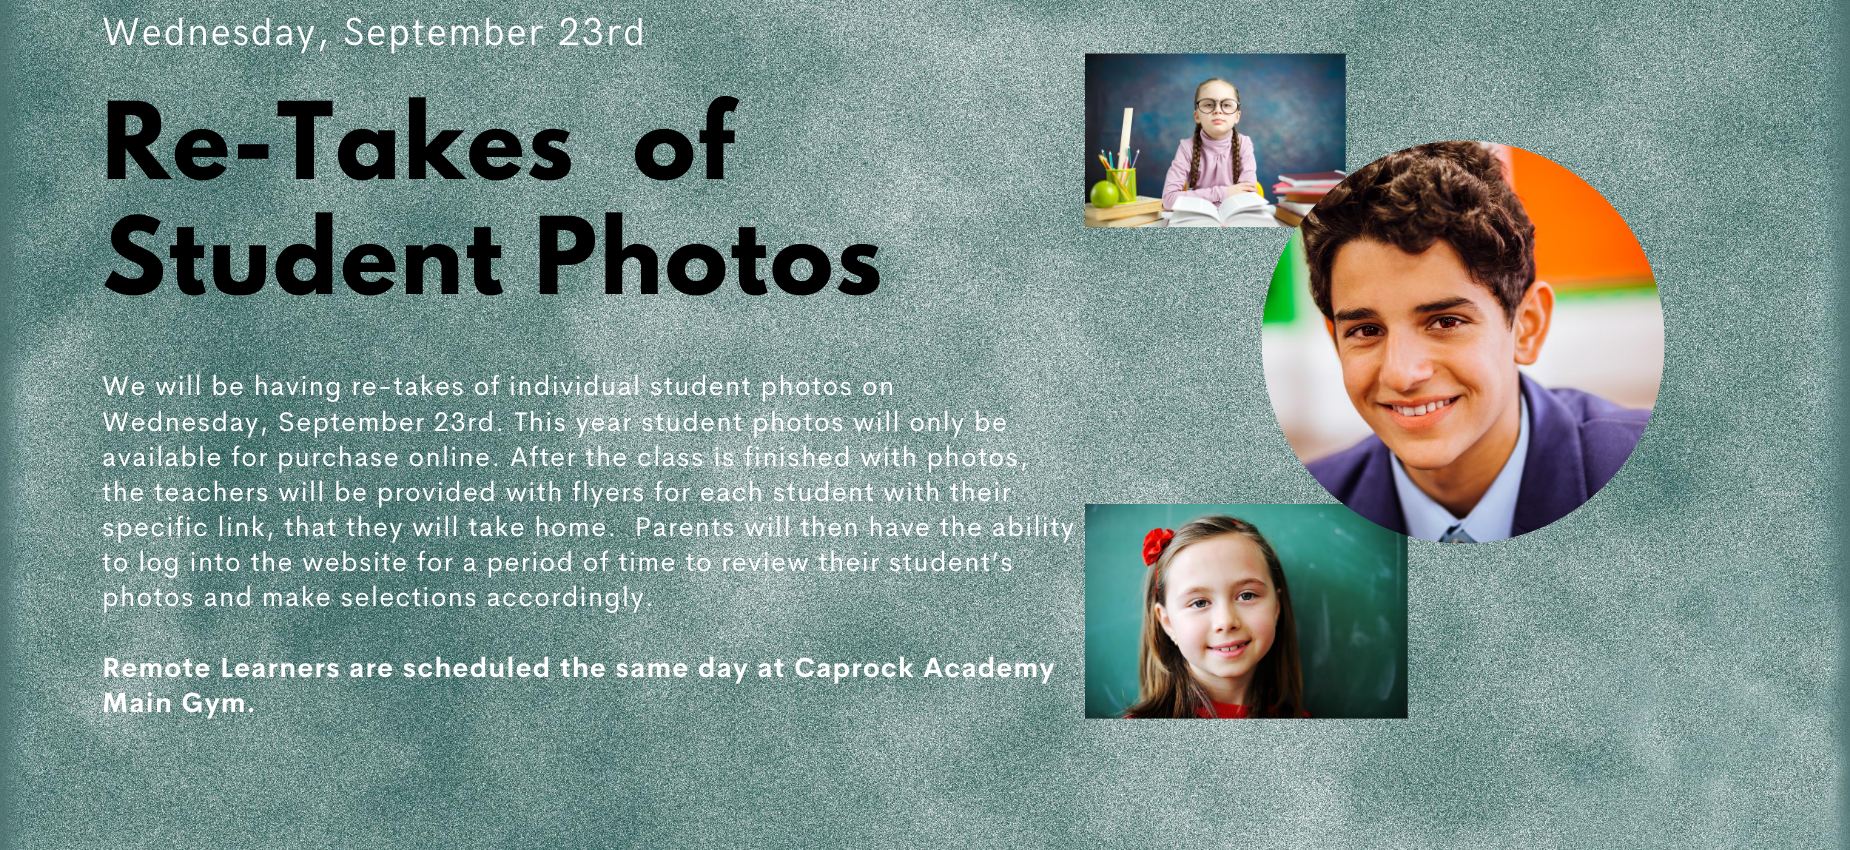 Re-Takes of Student Photos September 23rd.